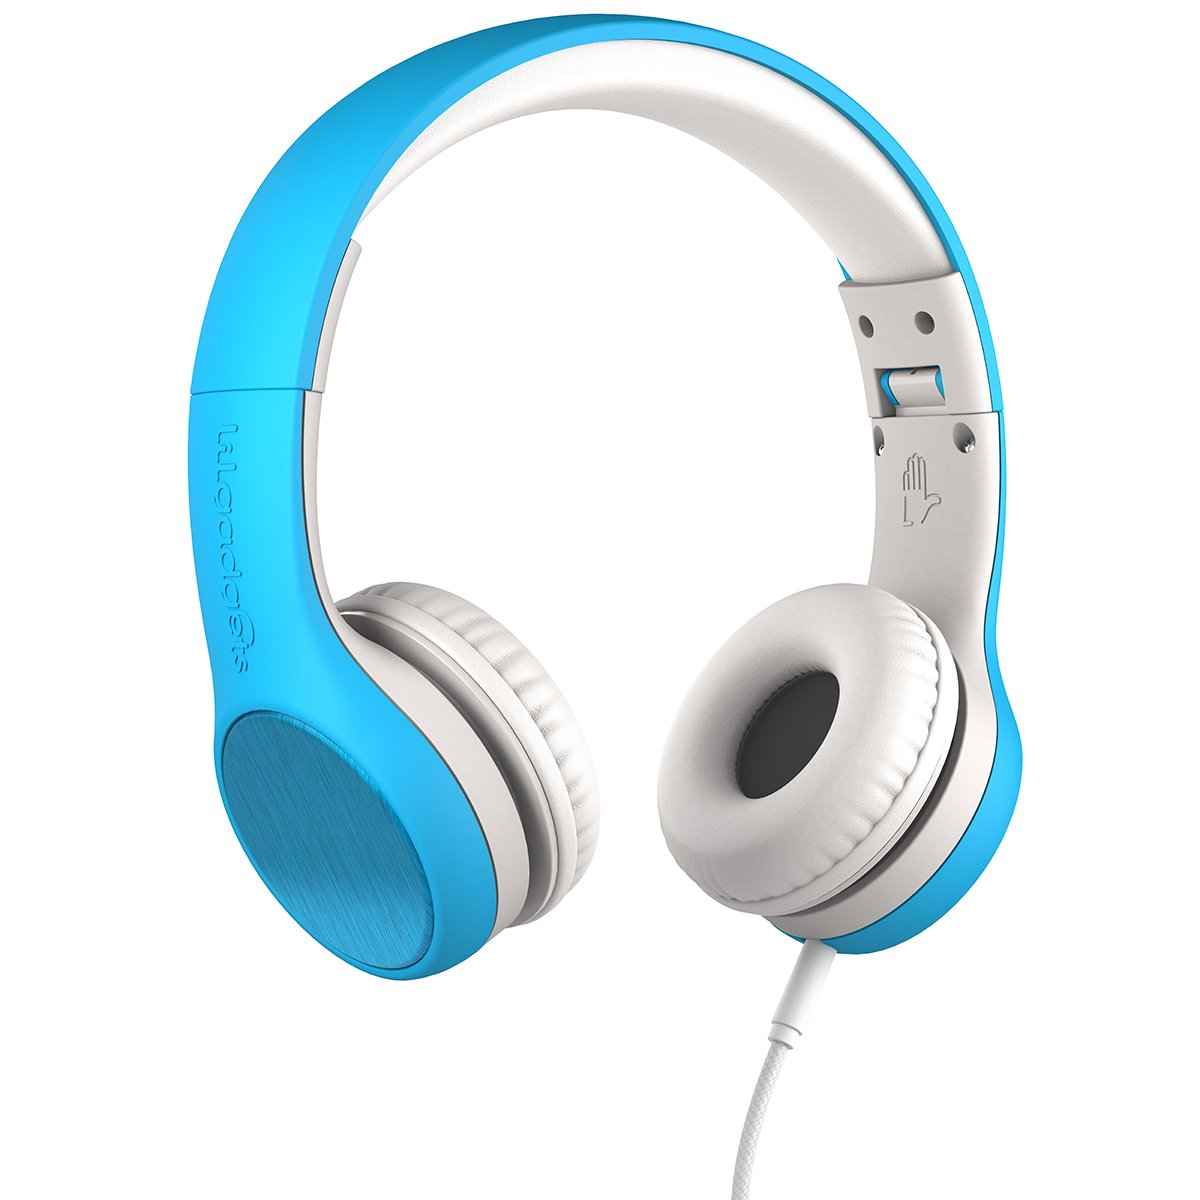 New! LilGadgets Connect+ STYLE Premium Volume Limited Wired Headphones with SharePort for Children/Kids (Blue) by LilGadgets